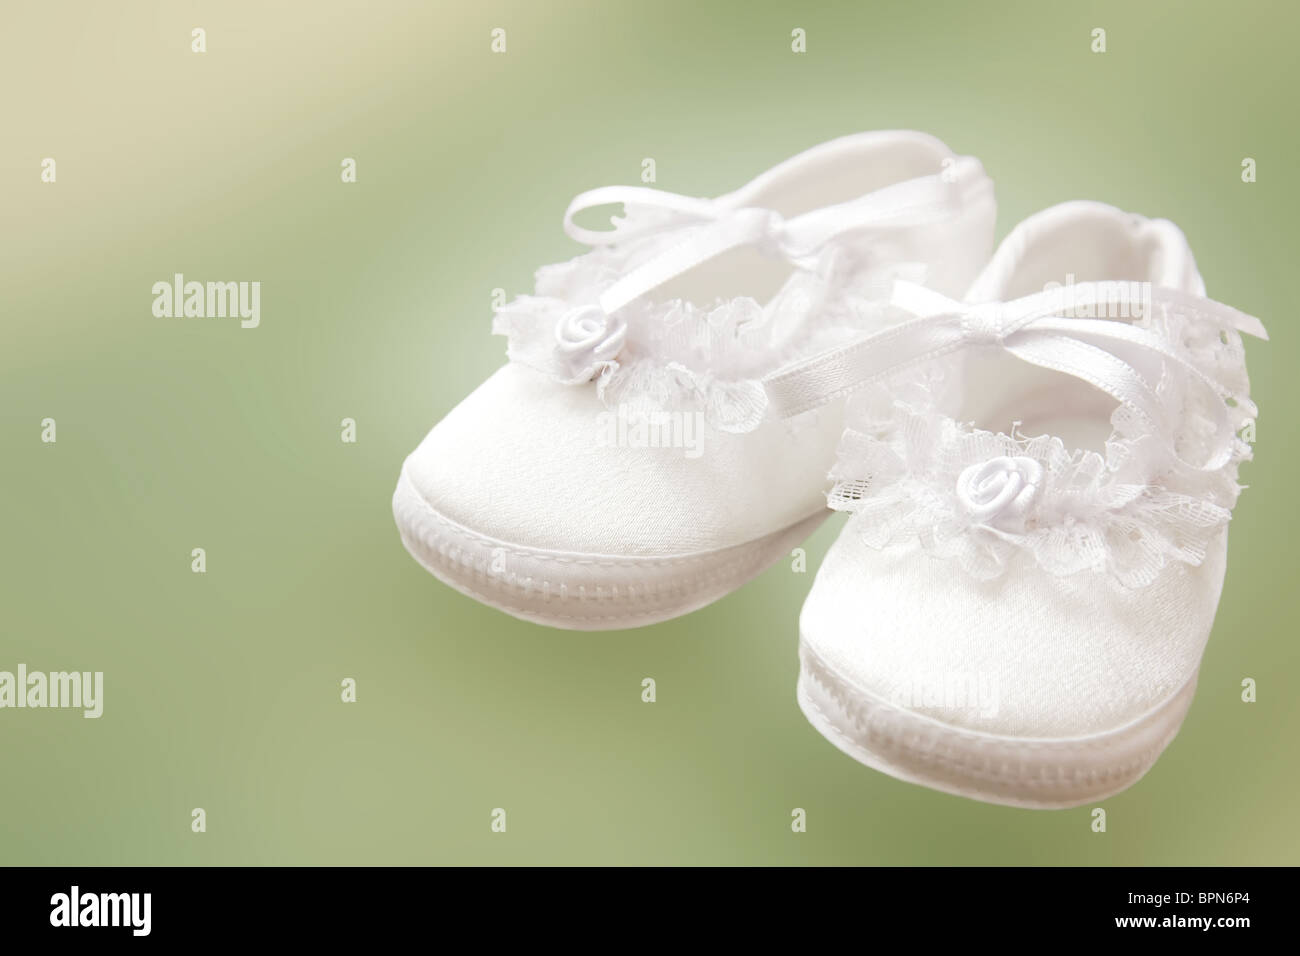 f5af46199997 White baby shoes for christening on green background Stock Photo ...